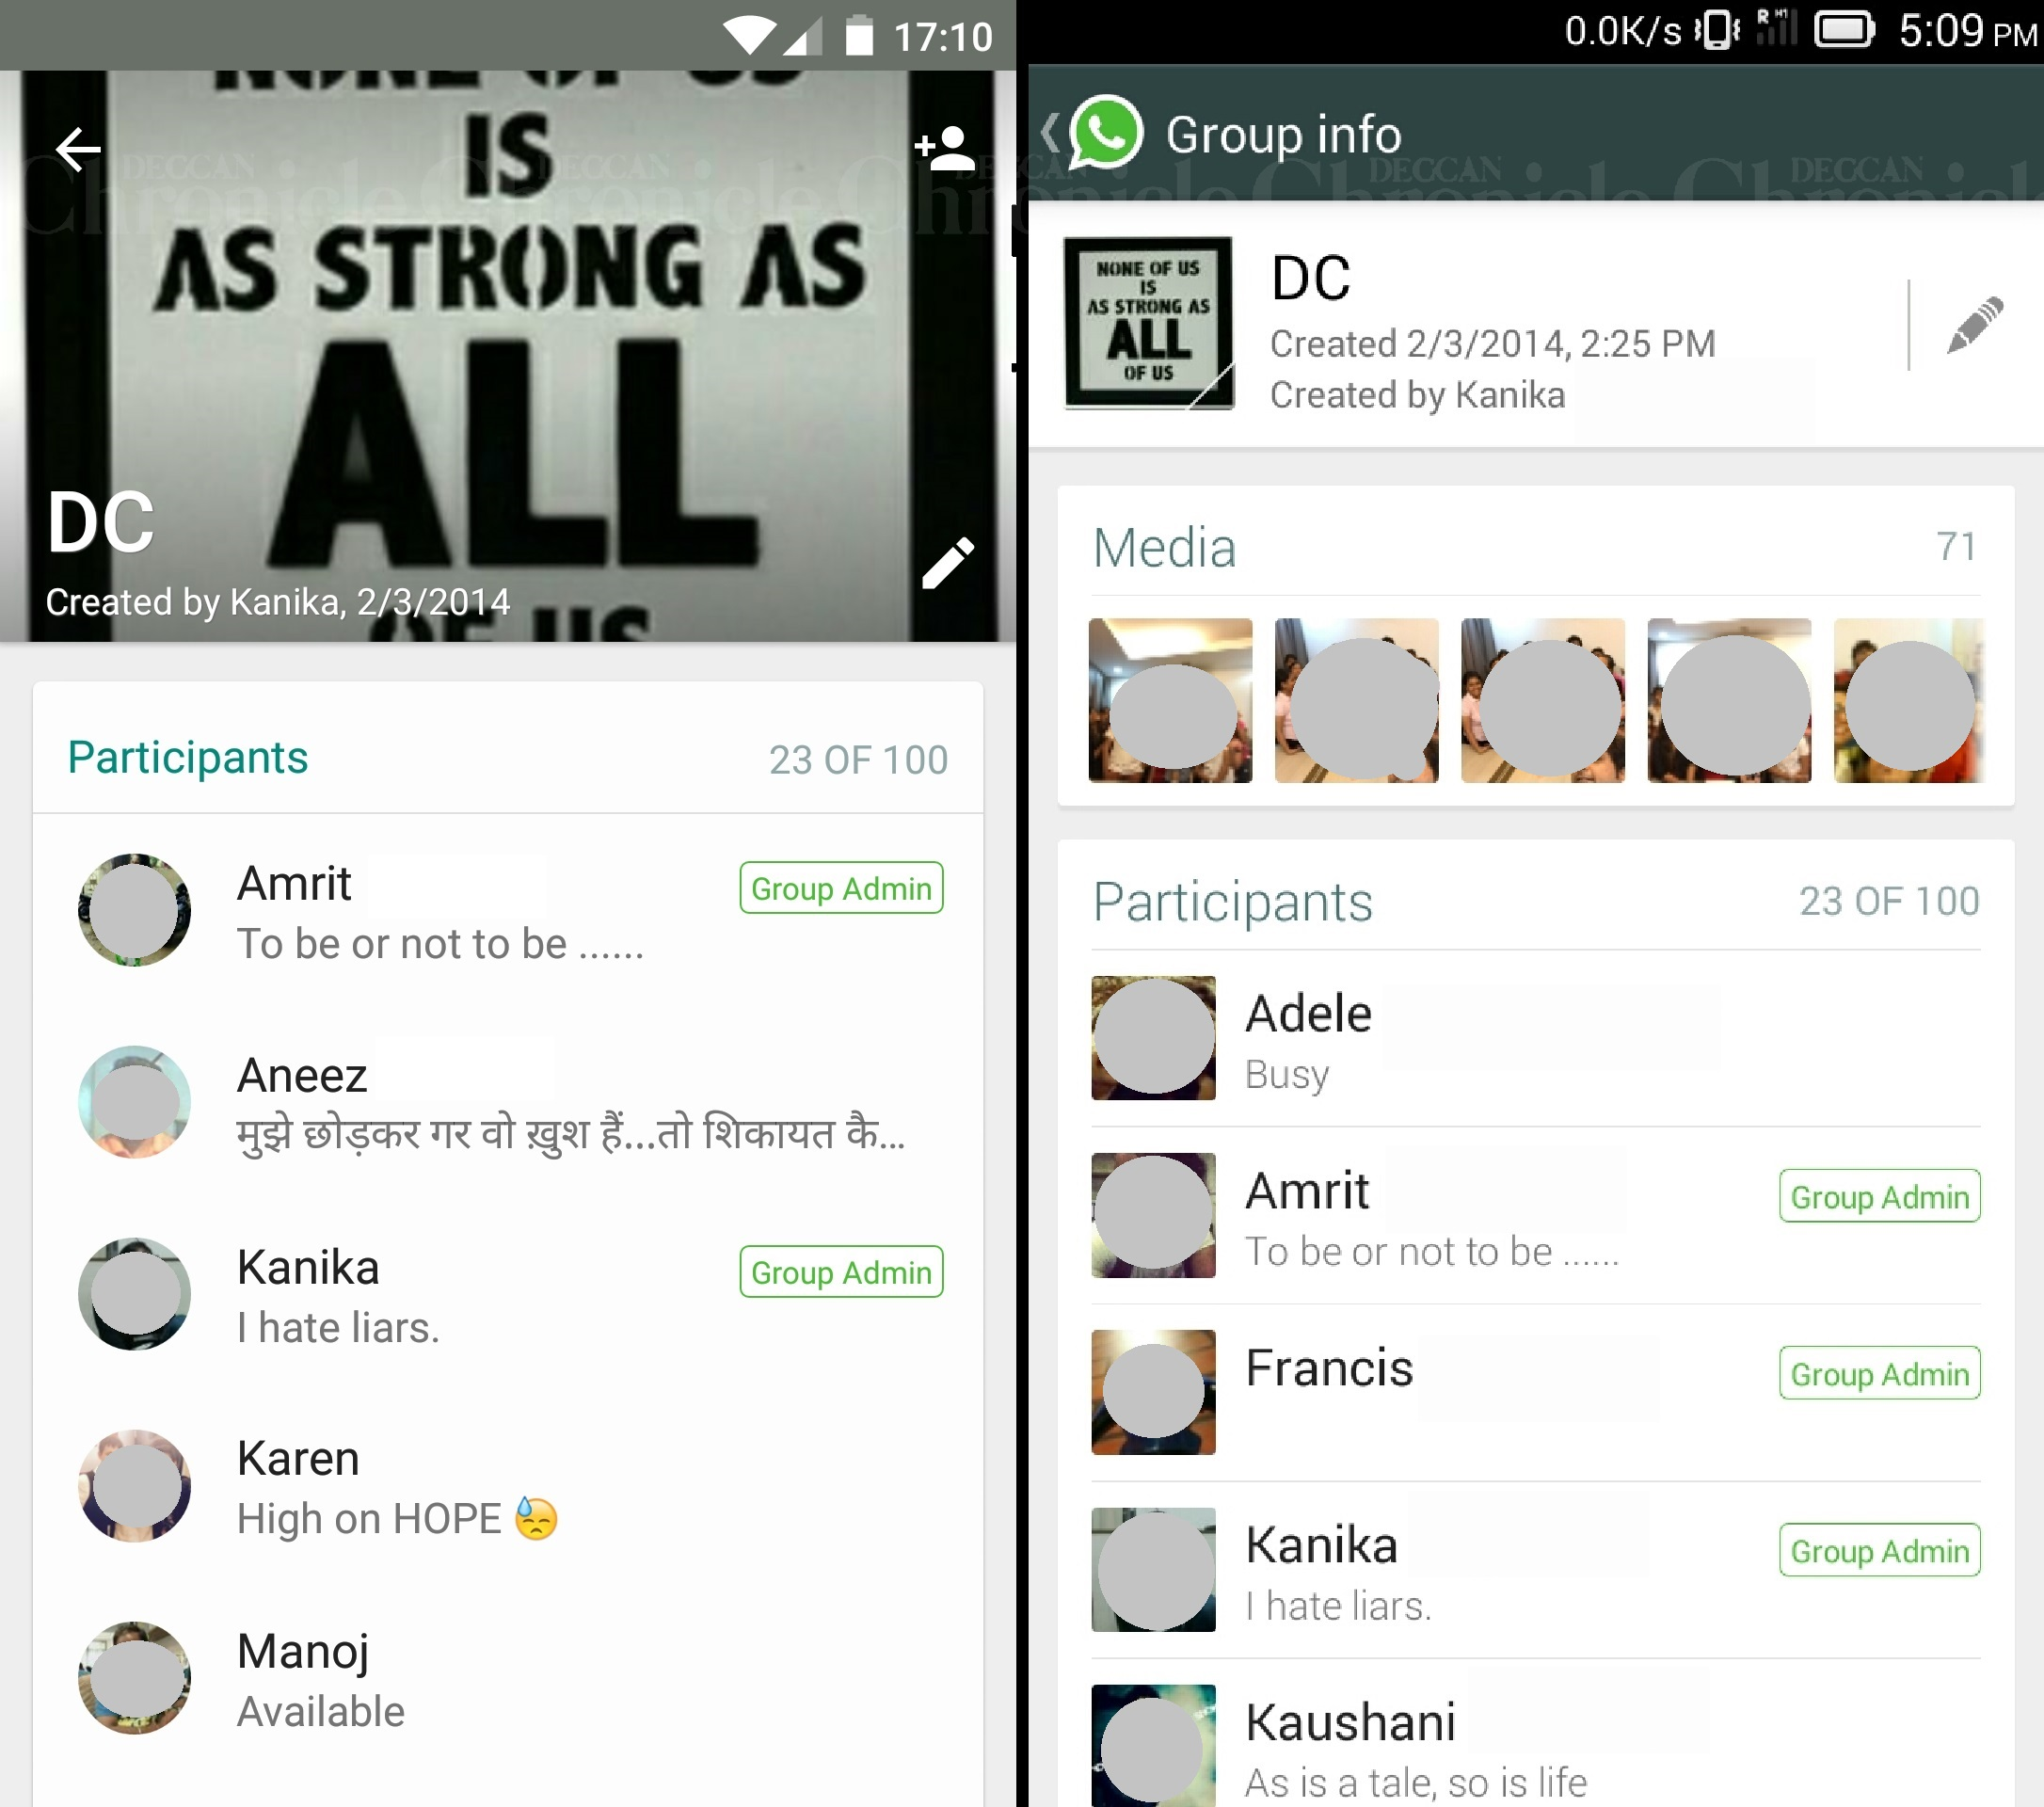 whatsapp just received a new design change